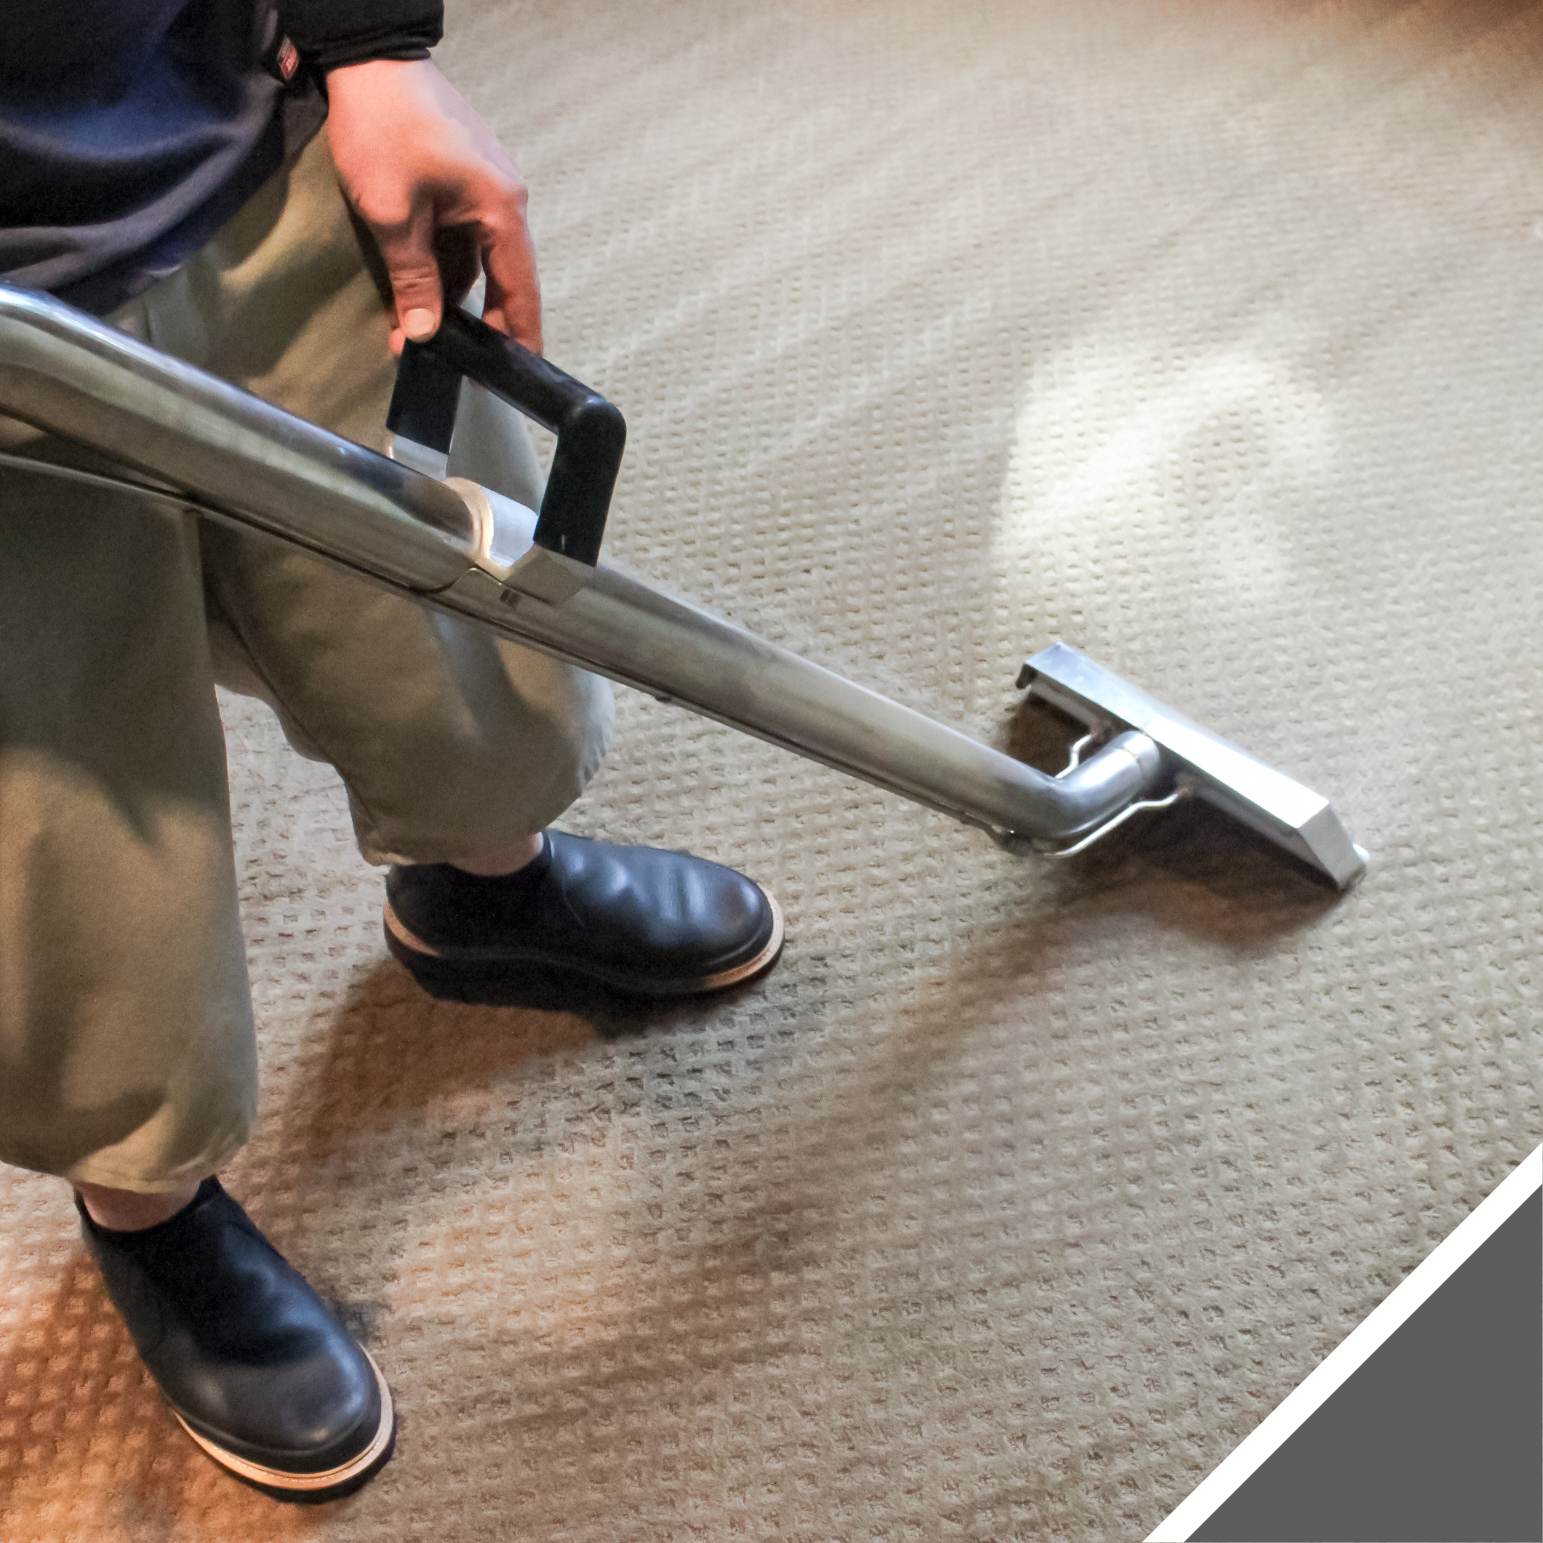 Remove the ground-in grit that cuts and destroys carpet fibers.